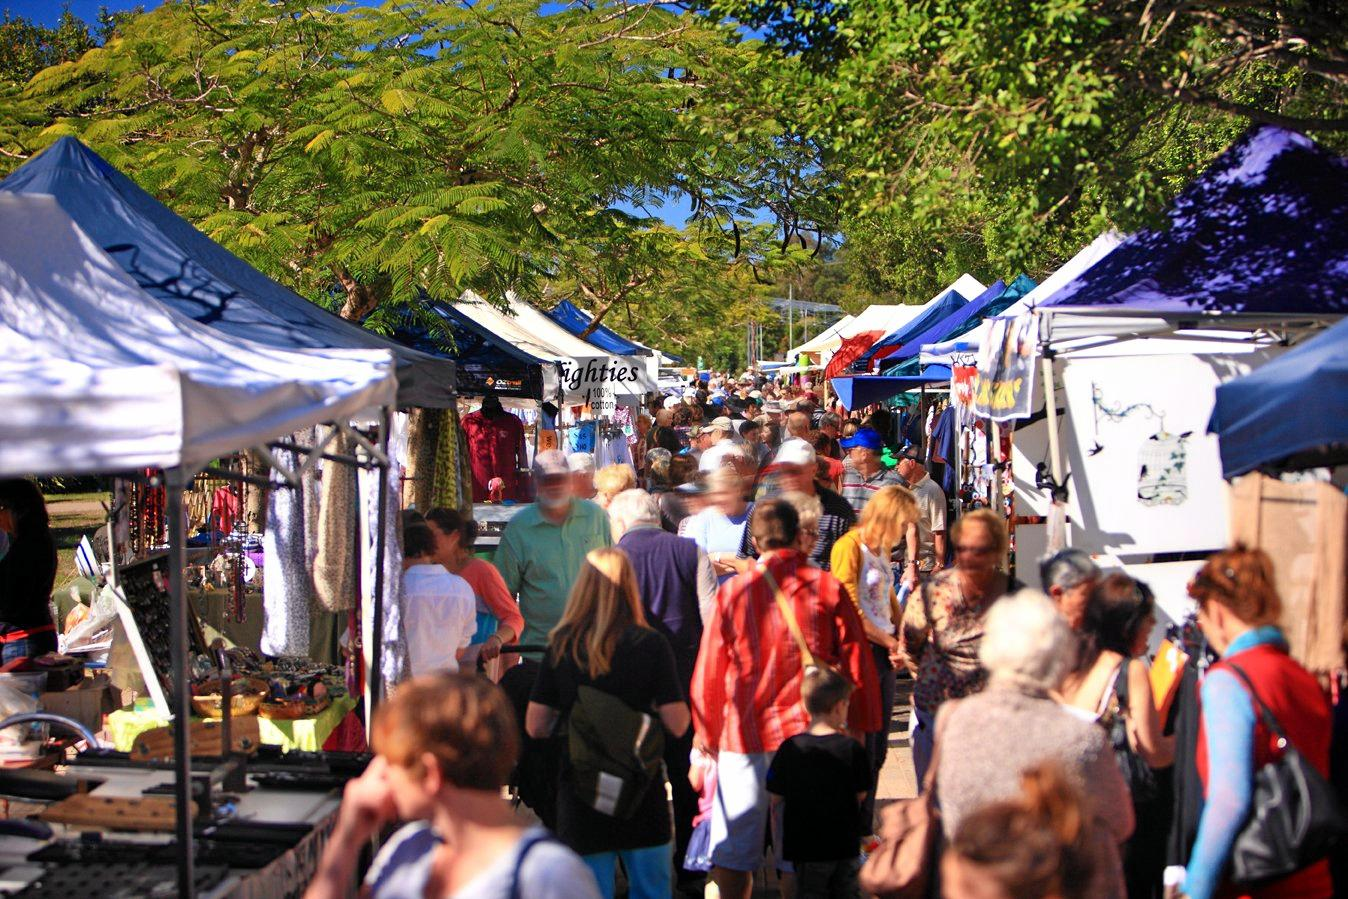 The Eumundi Market is on every Wednesday and Saturday.